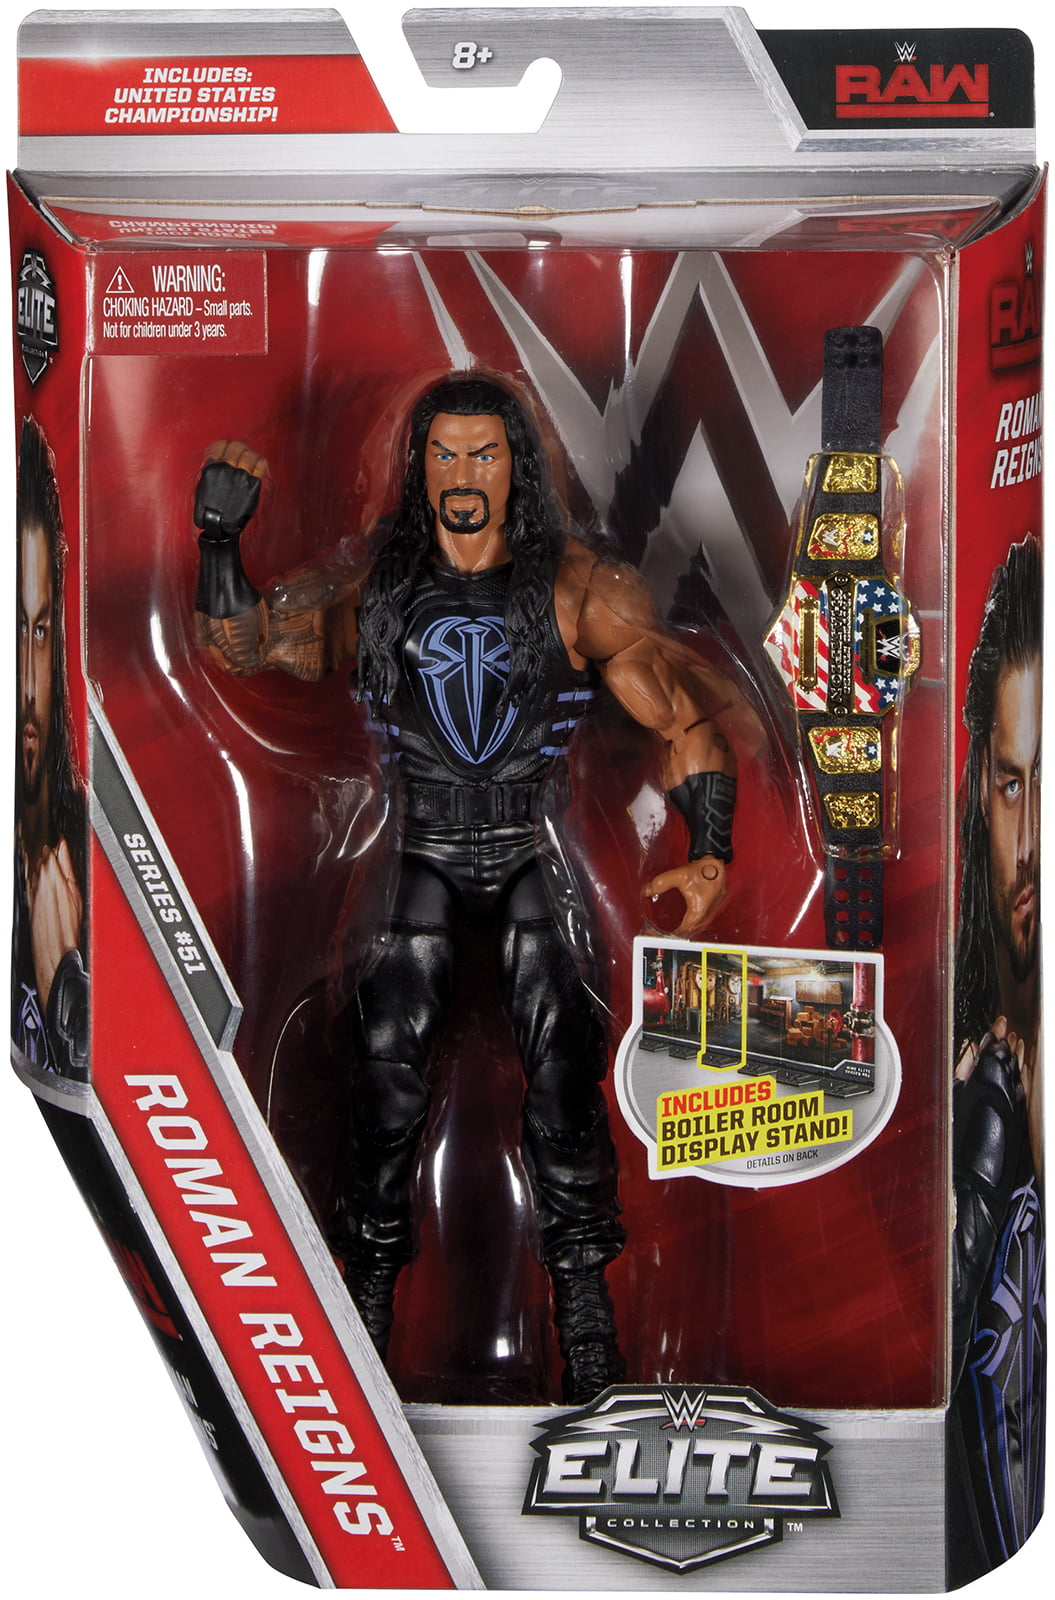 Roman Reigns WWE Elite 51 Toy Wrestling Action Figure by Mattel